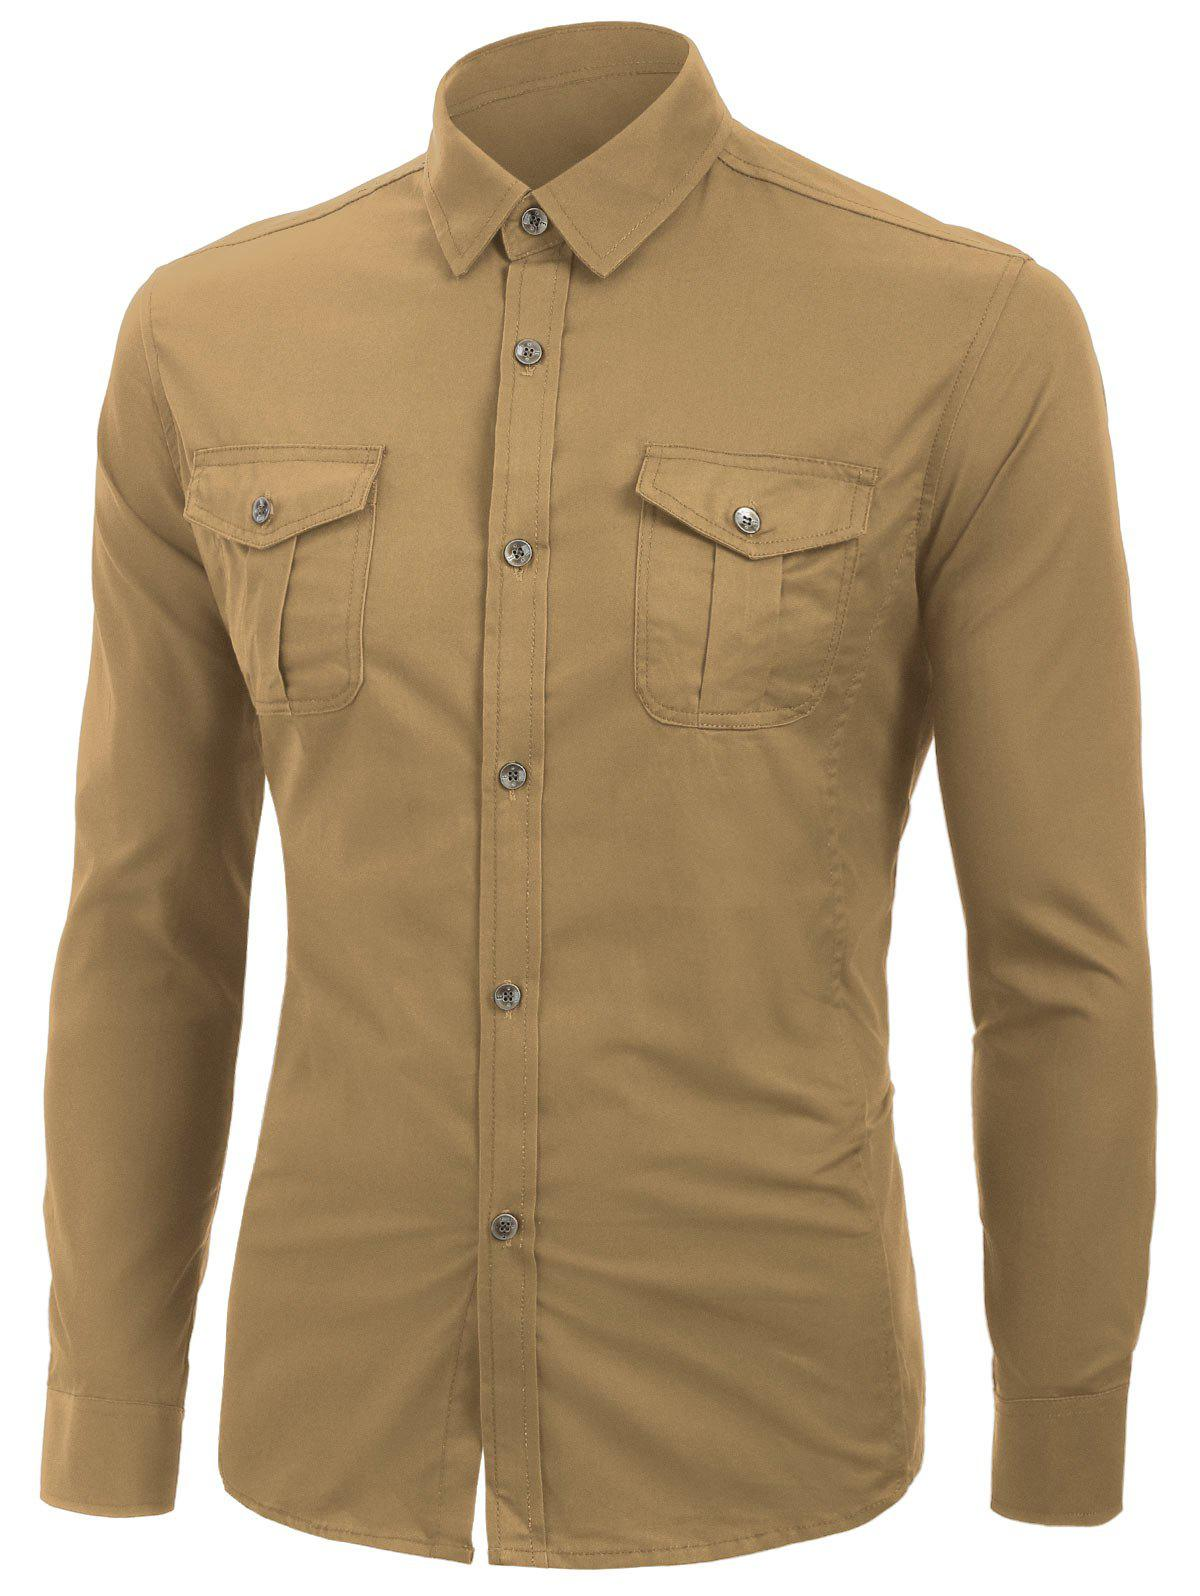 Solid Color Long Sleeves Cargo Shirt - LIGHT KHAKI XL